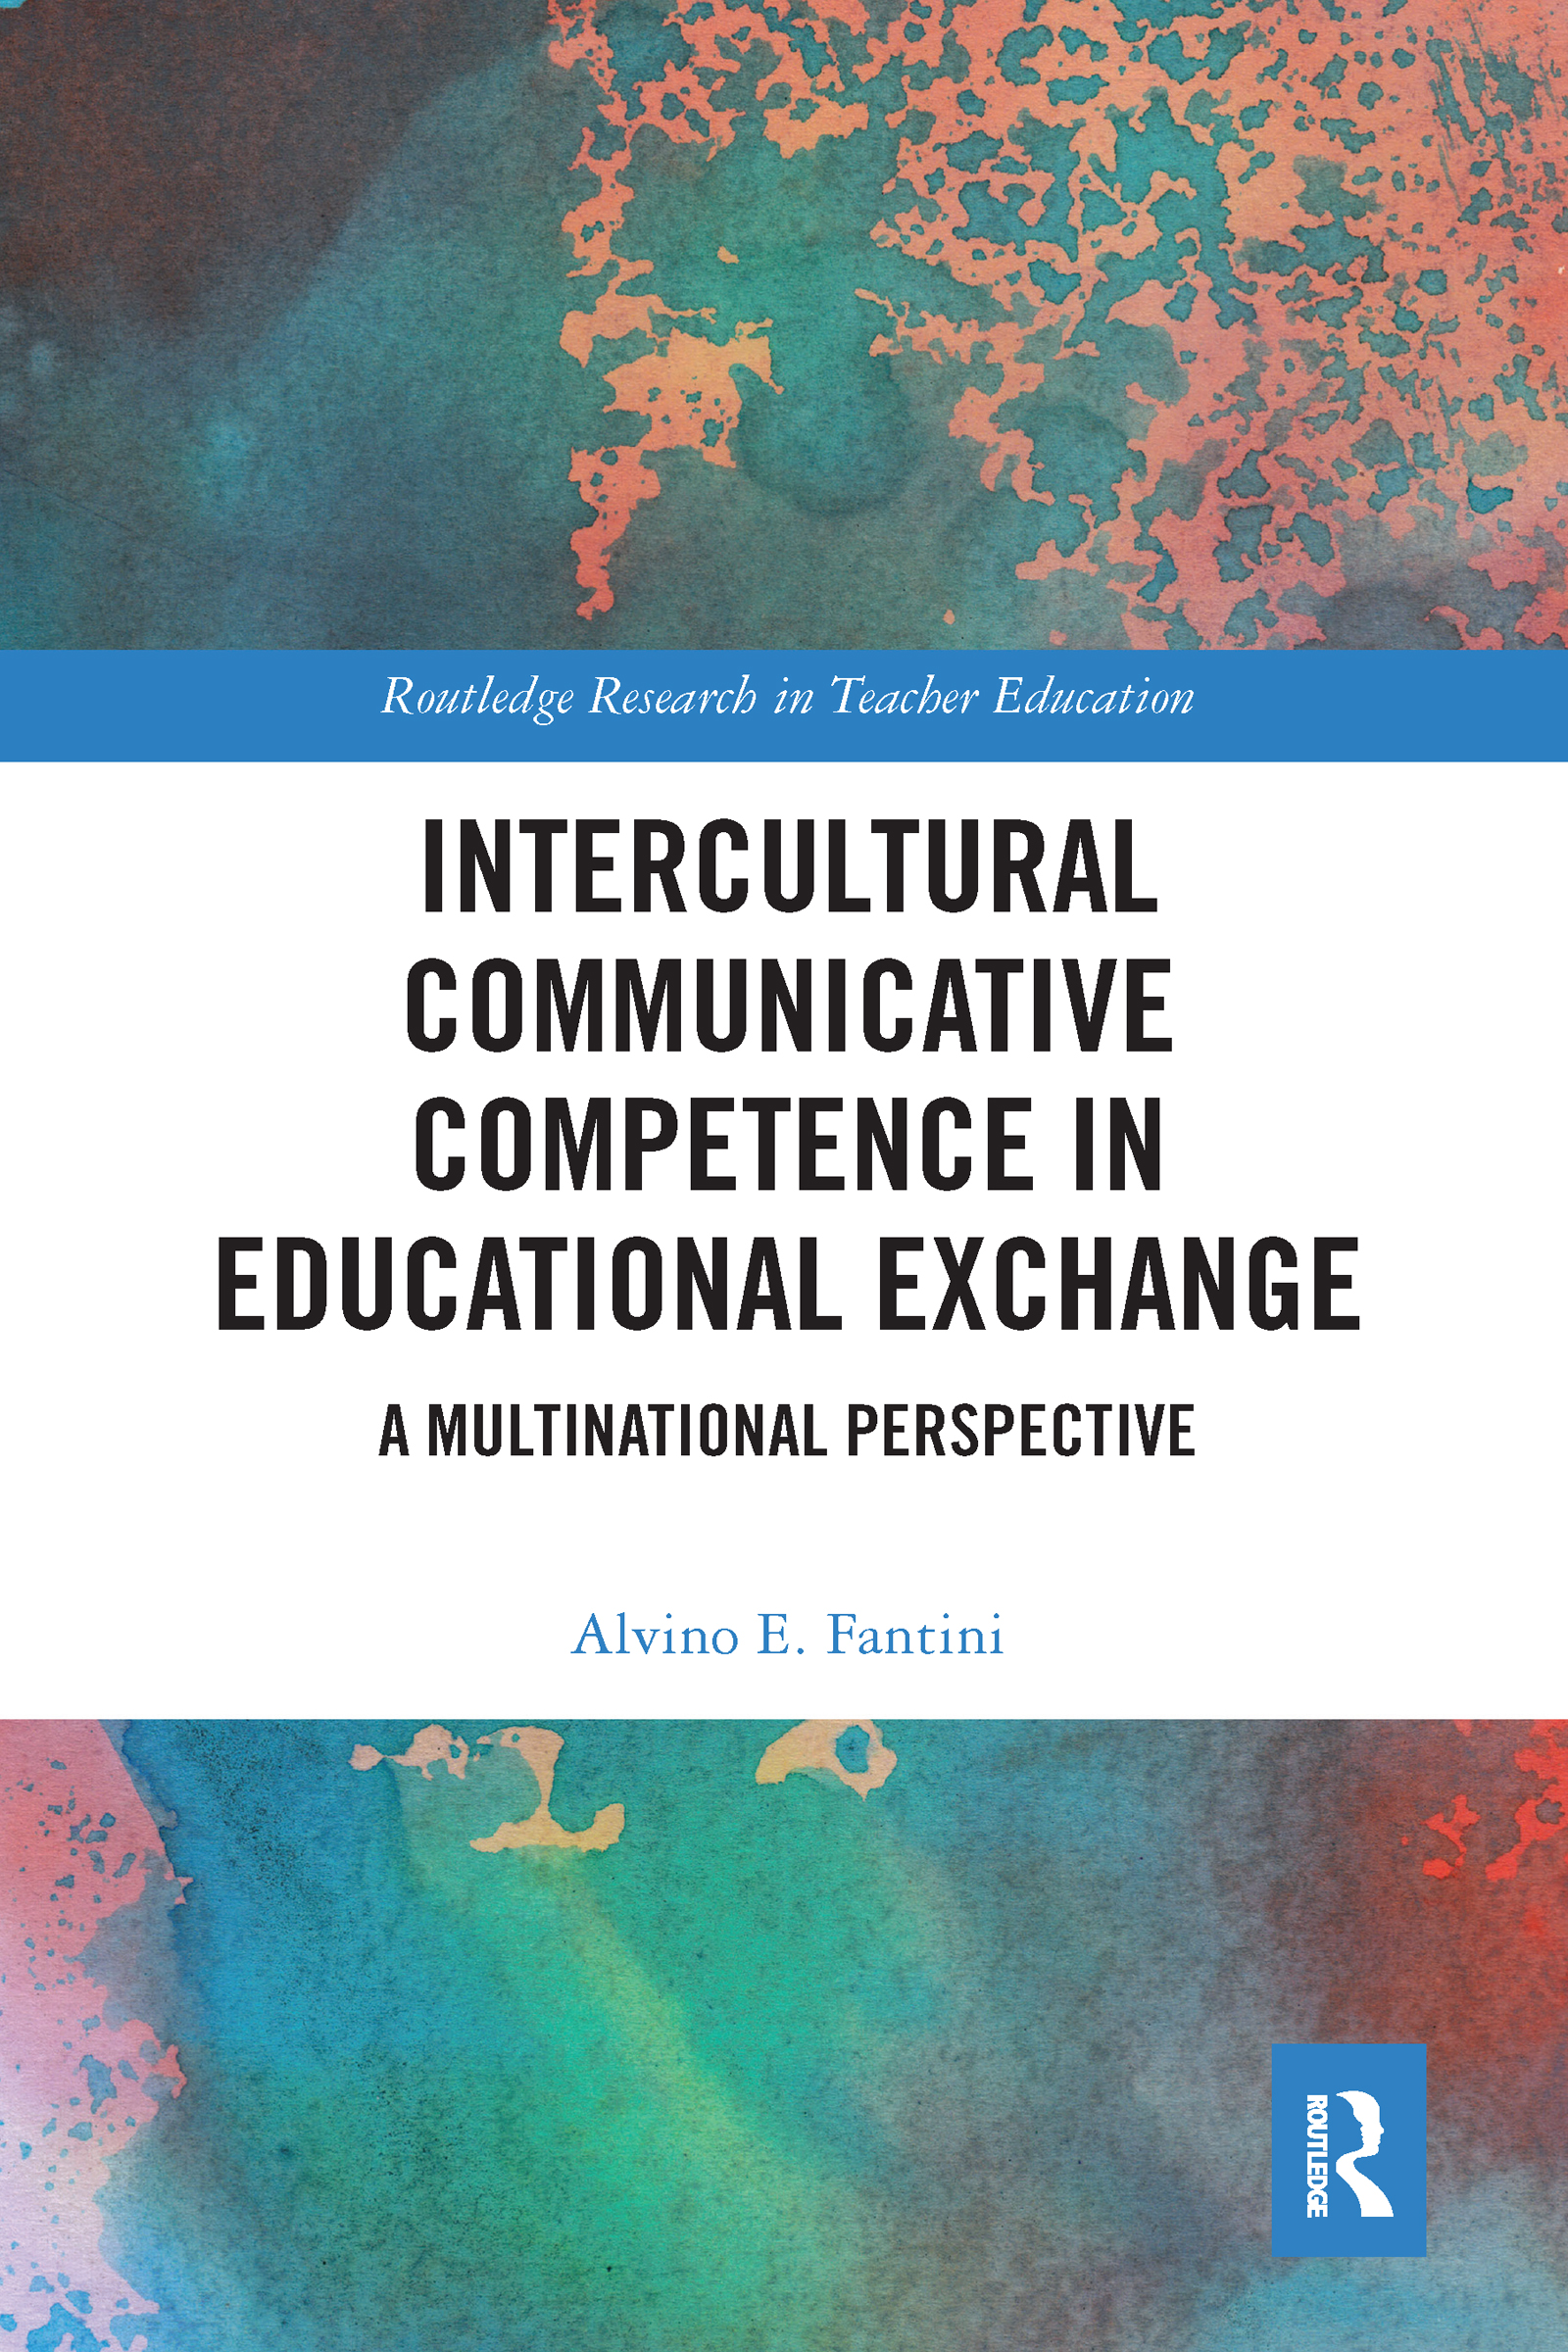 Intercultural Communicative Competence in Educational Exchange